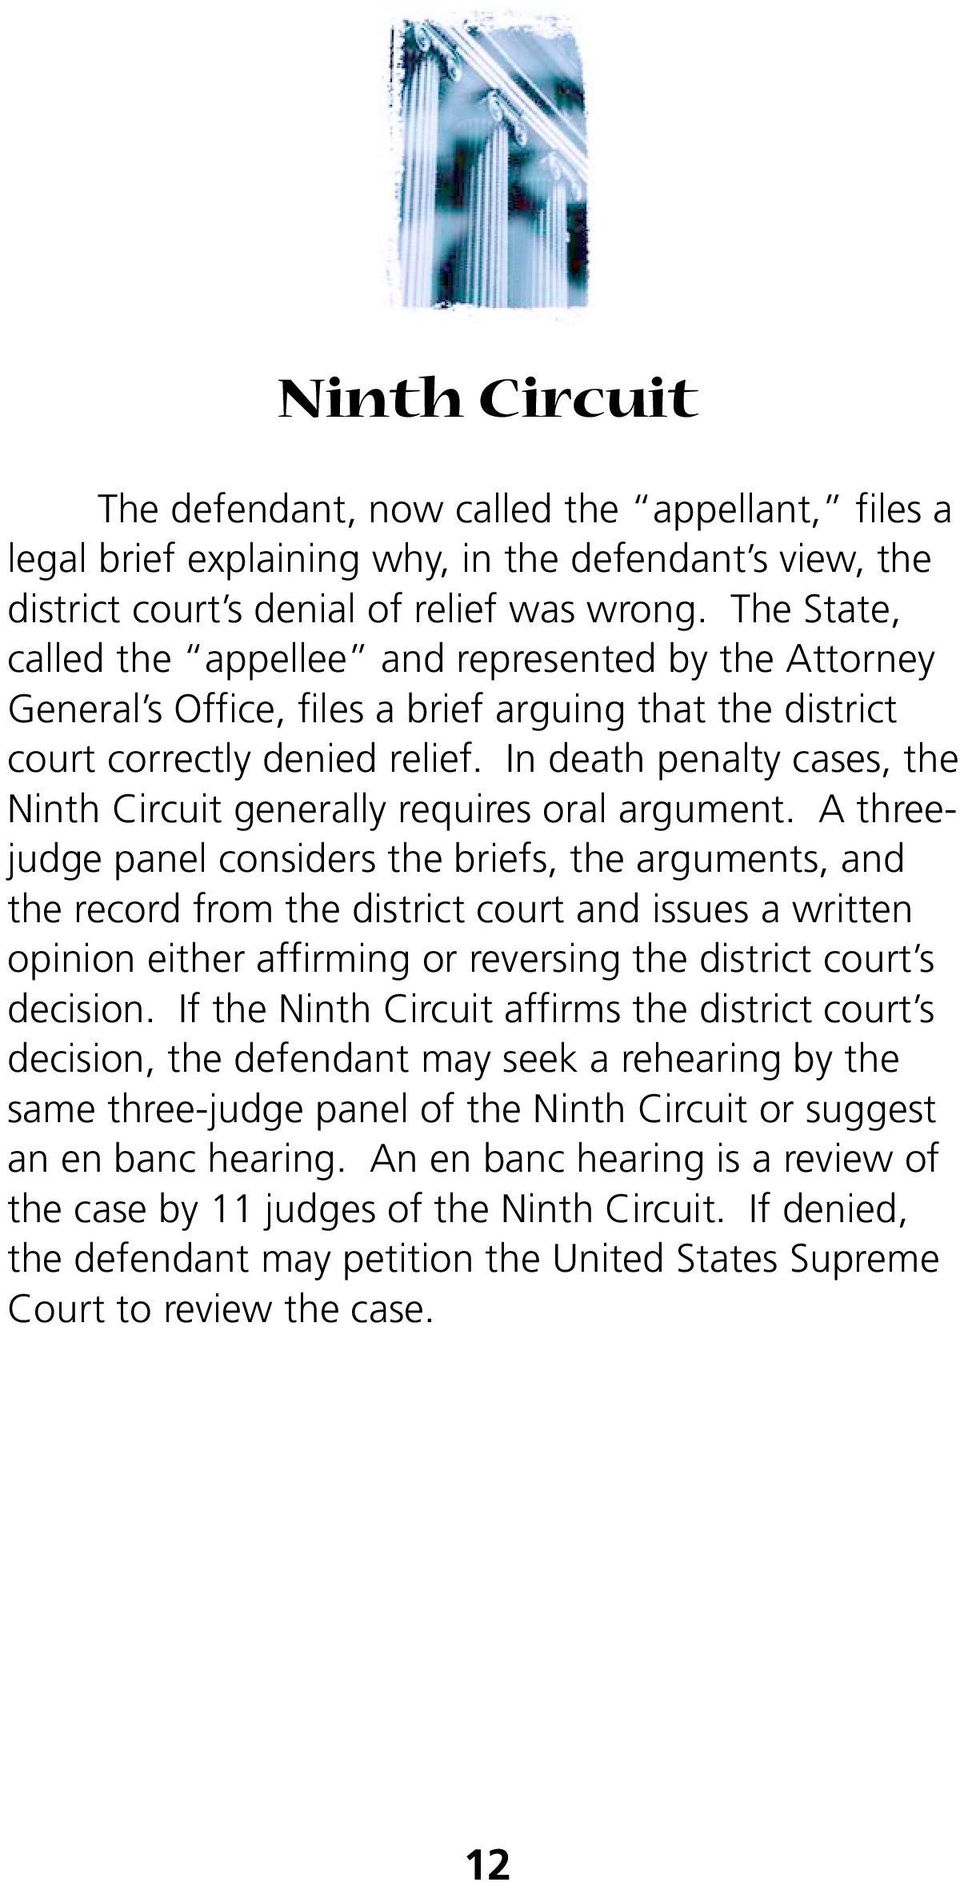 In death penalty cases, the Ninth Circuit generally requires oral argument.